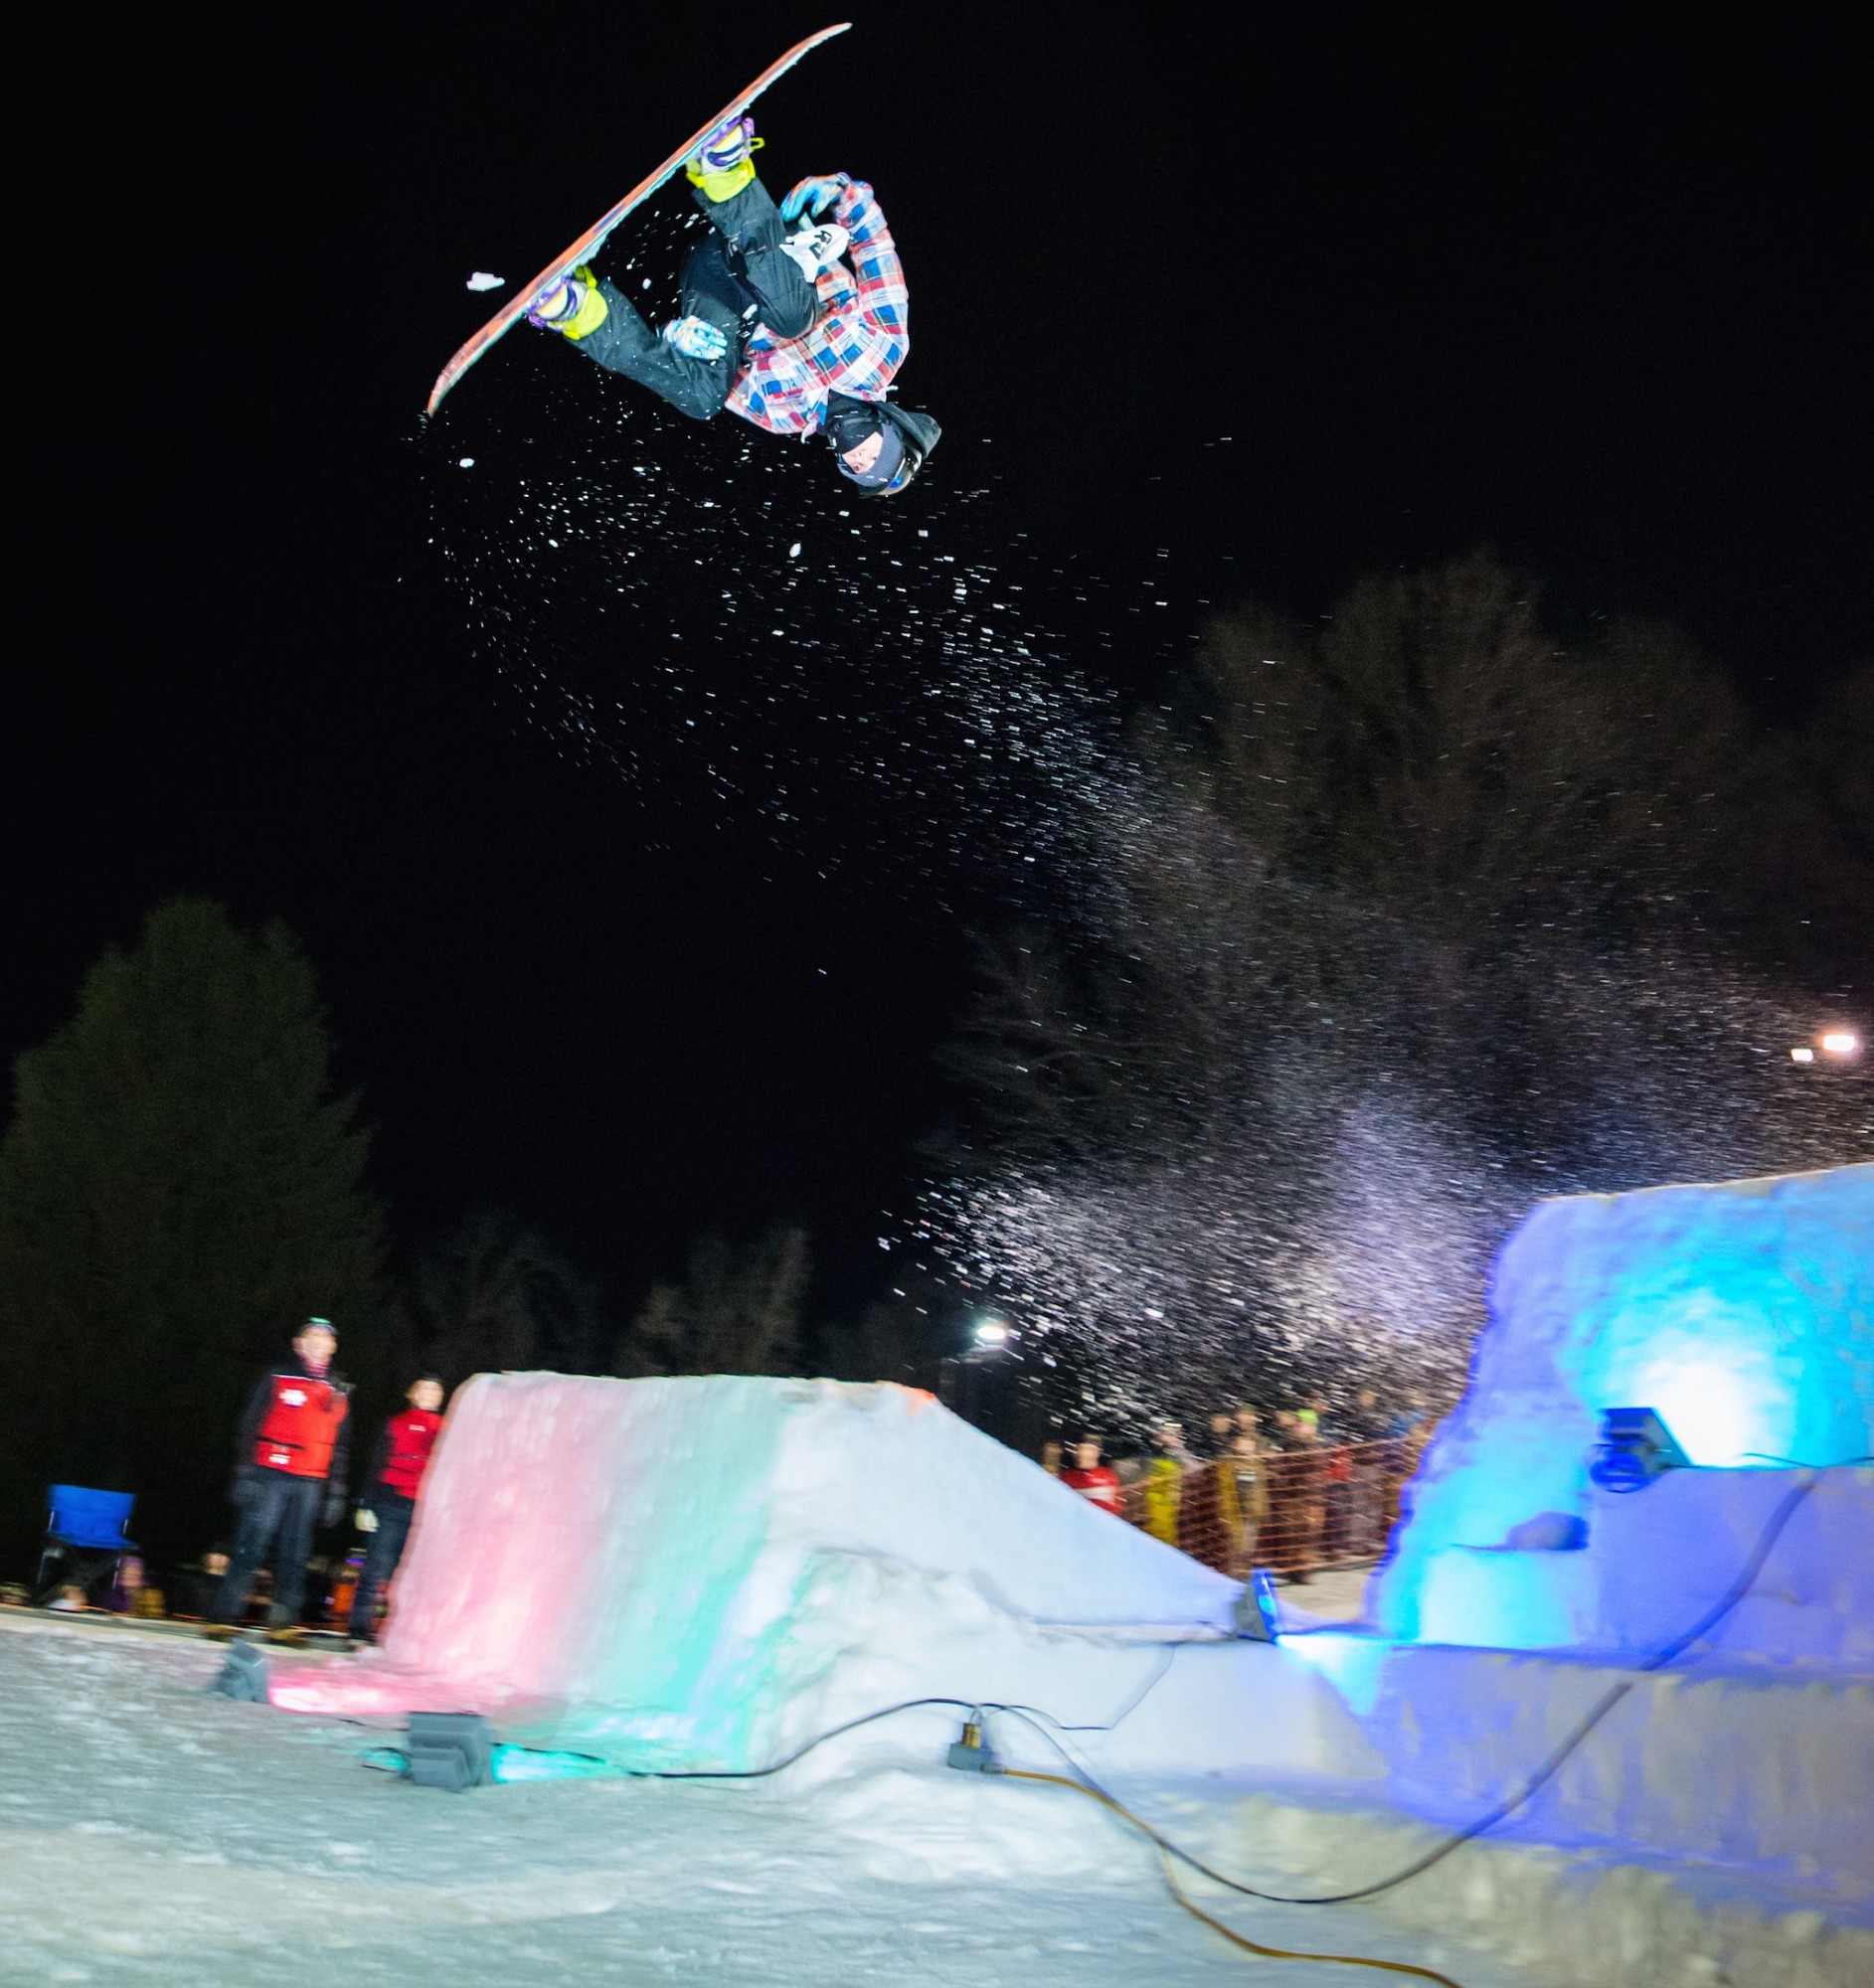 Big Air at Snow Trails photo by ArkPhotoDesign.com